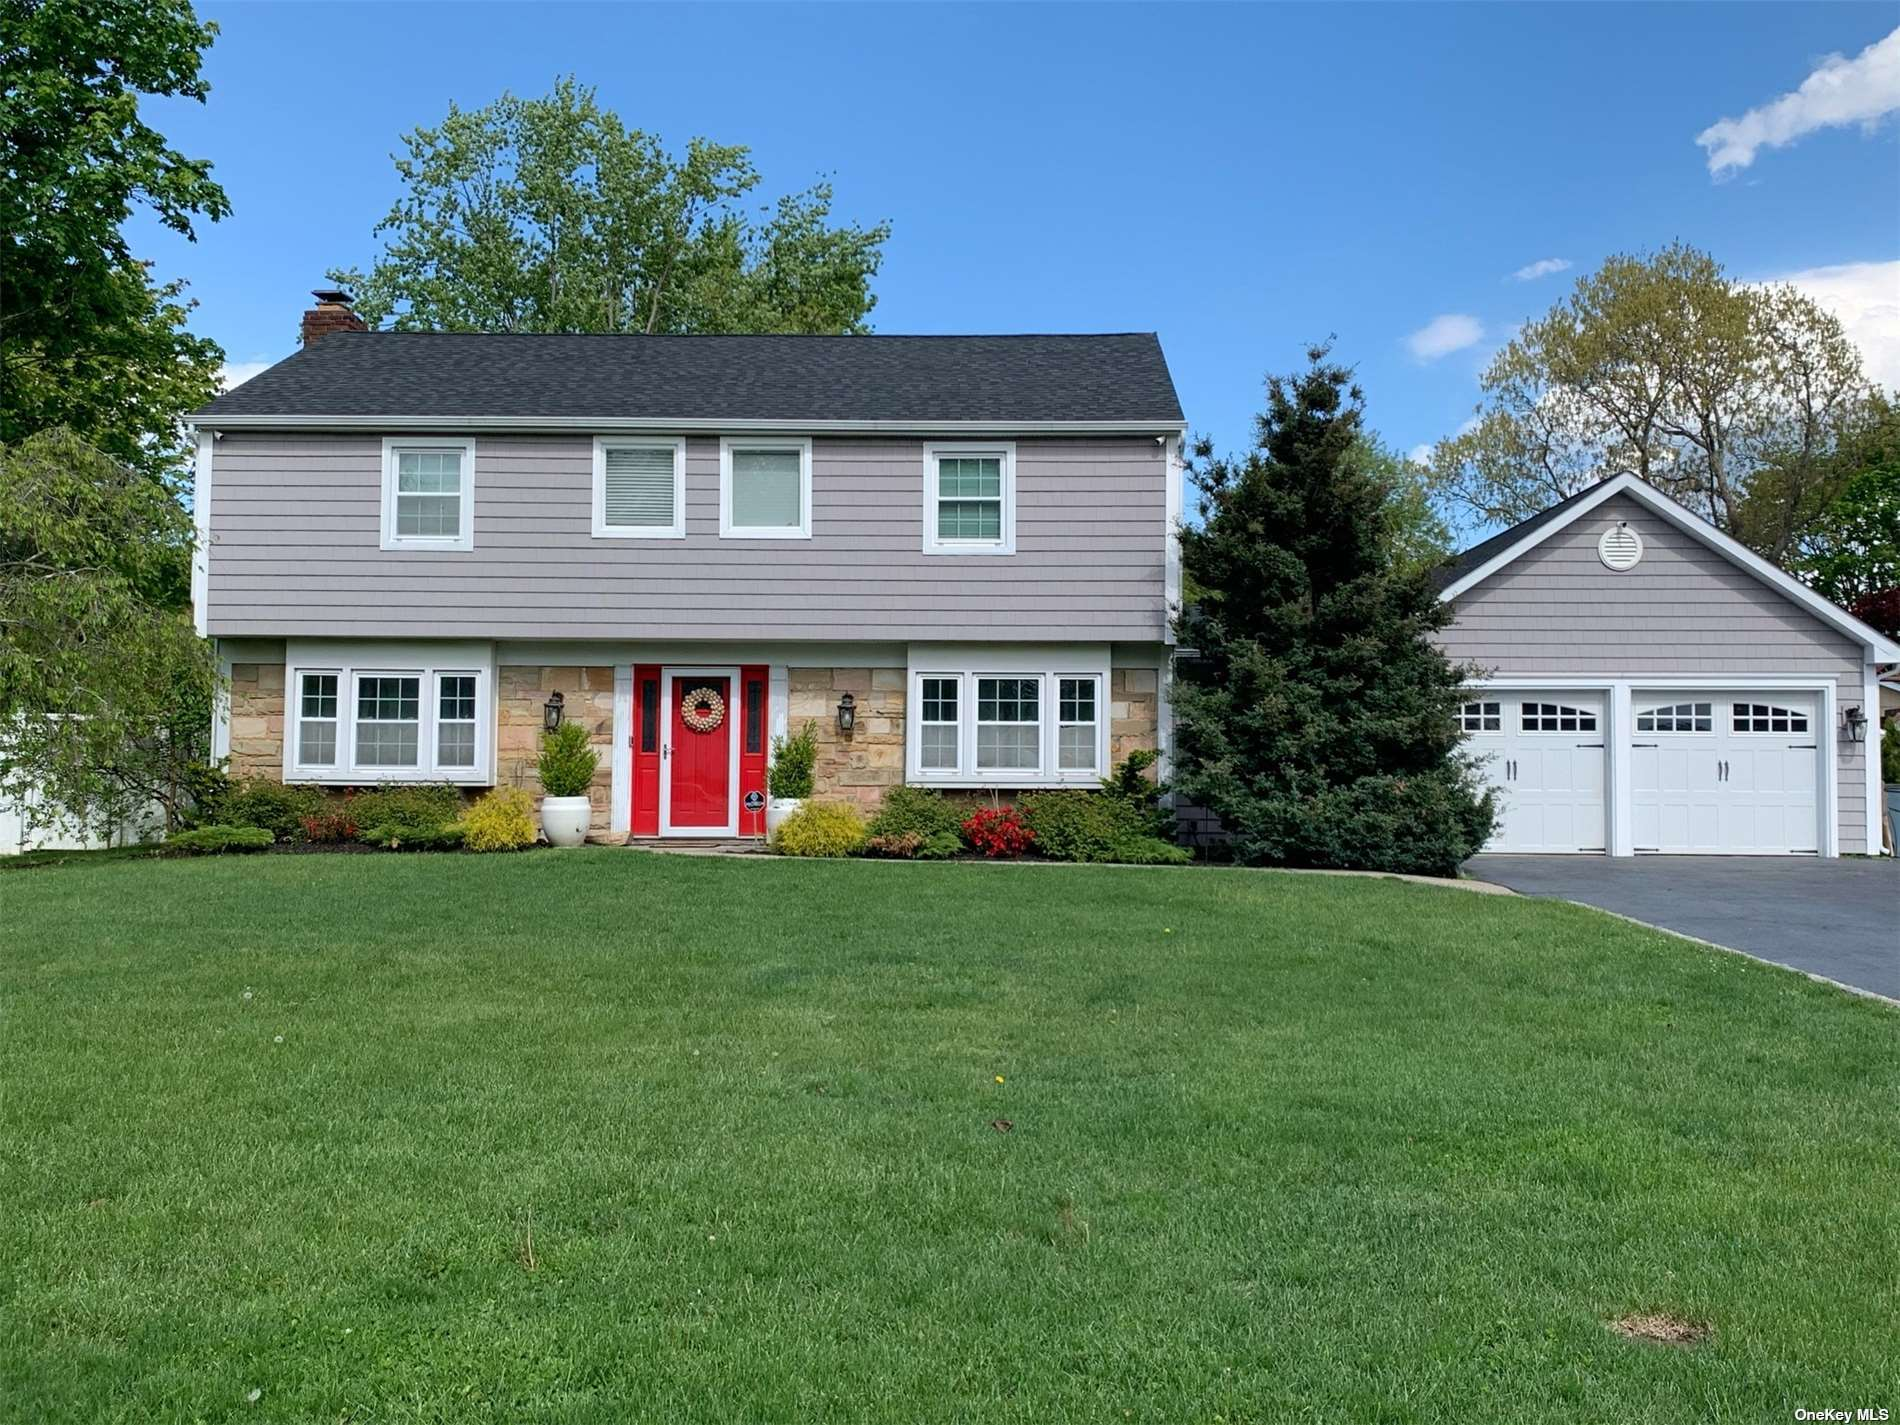 Beautifully Renovated in 2018 Colonial Home in the THREE VILLAGE SCHOOL DISTRICT with 2,900 Sq Ft Plus a 2-Car Attached Garage with Large Attic. Foyer, Living Room, Formal Dining Room, Eat-in-Kitchen with 9'x5' Island, Viking 8-Burner Gas Stove w/Dbl Oven, Viking DW, Jenn-Aire Refrigerator & 2-Door Wine Cooler Family Room & Half Bath on 1st Floor. 2nd Floor has Master Bedroom with Master Bath, 3 More Bedrooms and Full Bath. Large Pie-Shaped .42 Acre Property. 2-Zone Gas Hot Air Heat, Central Air & IGS. All New From 2018: Roof, Electric Panel & Wiring, Siding, Flooring, Plumbing, Hot Water Heater, Gas Boiler. Large Attic Above Garage. Plans for Inground Pool Have Been Submitted to the Town; Waiting Approval. Please Review the Attached Highlight Sheet.